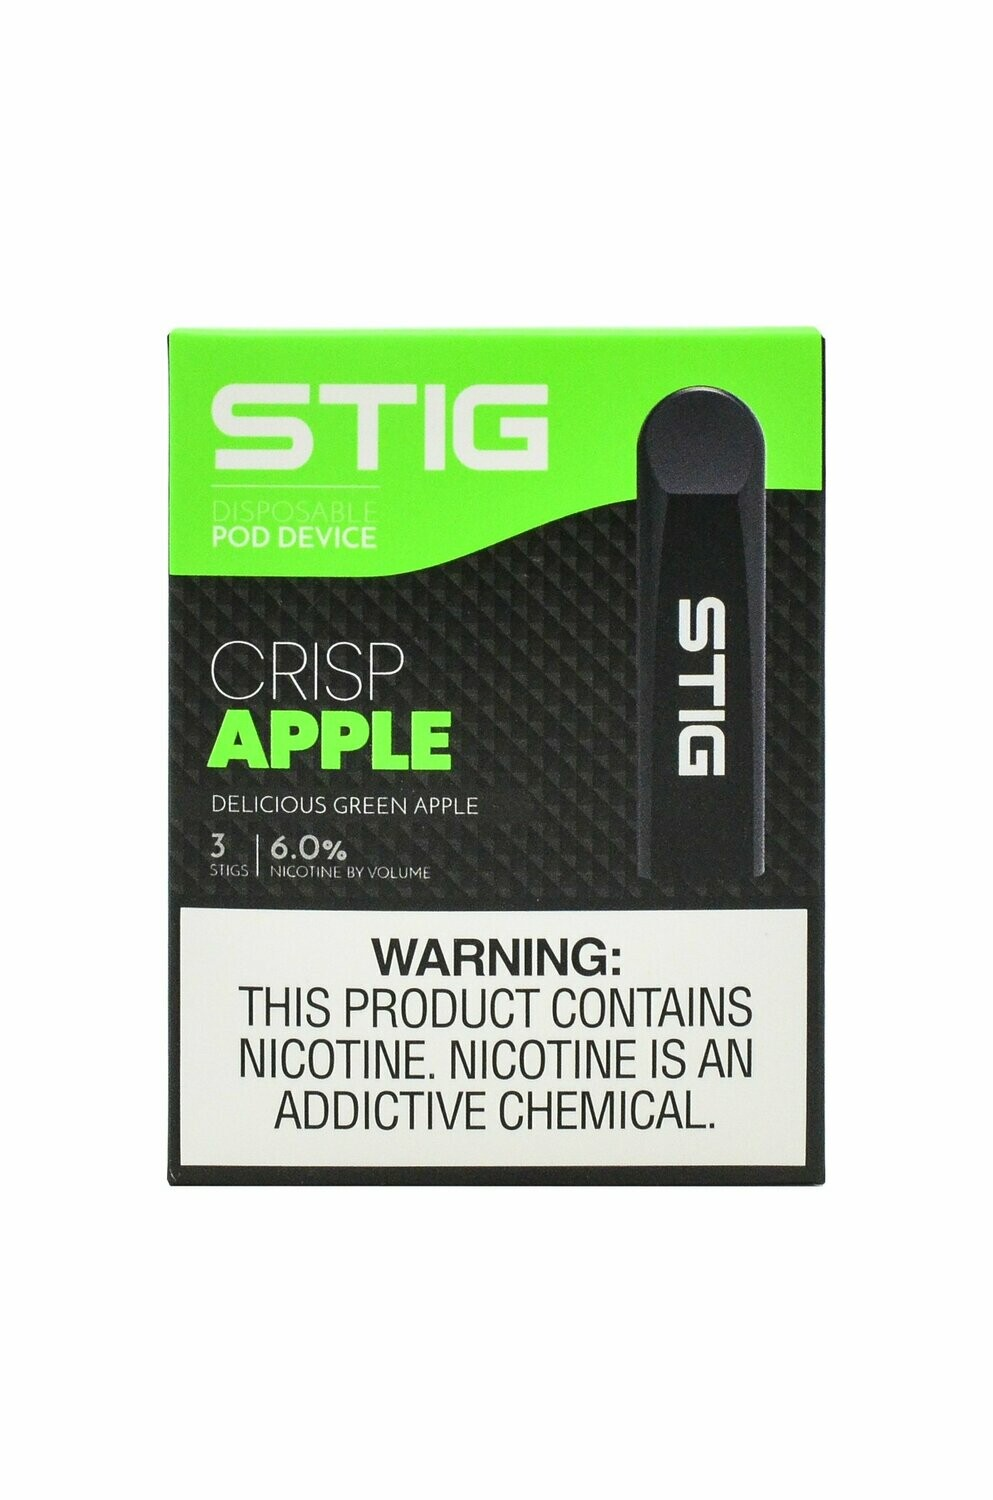 STIG Crisp Apple 3-Pack Disposable Device - علبة 3 تفاح أخضر من ستيج